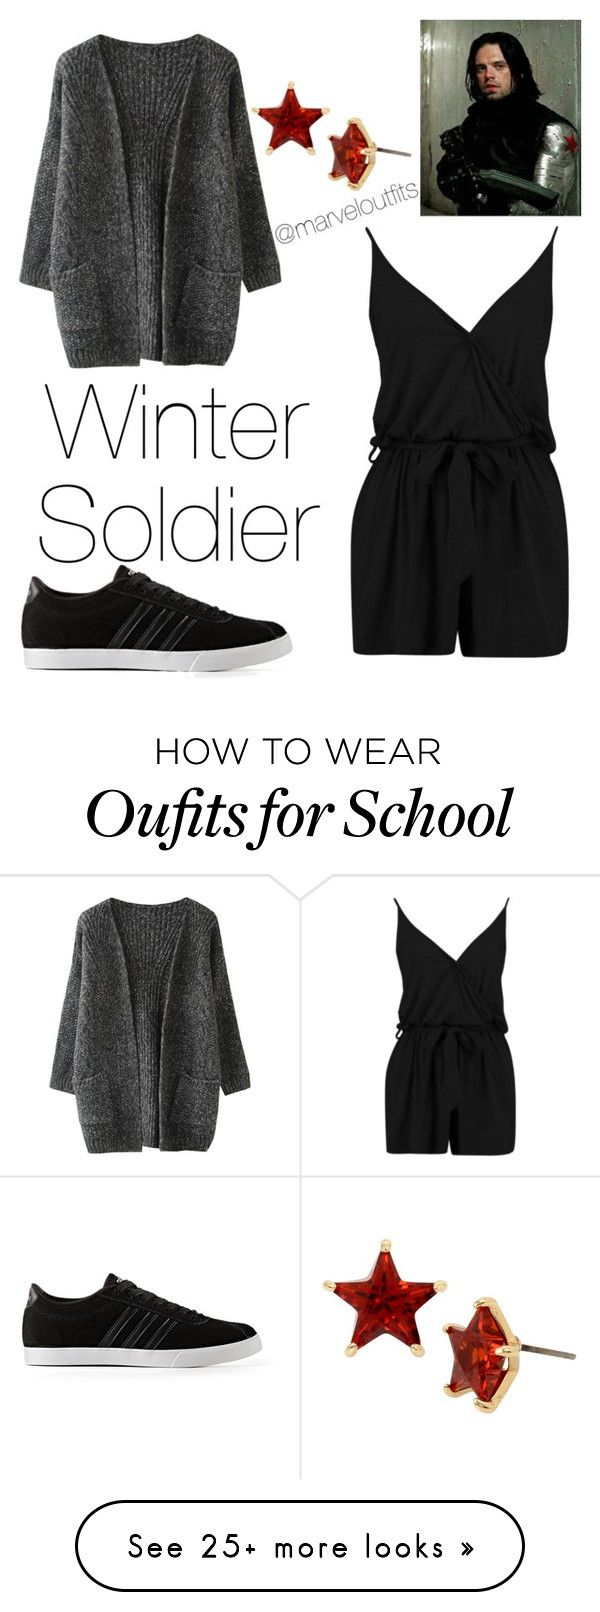 """Winter soldier"" by marvelousfilms on Polyvore featuring Boohoo, Betsey Johnson and adidas"